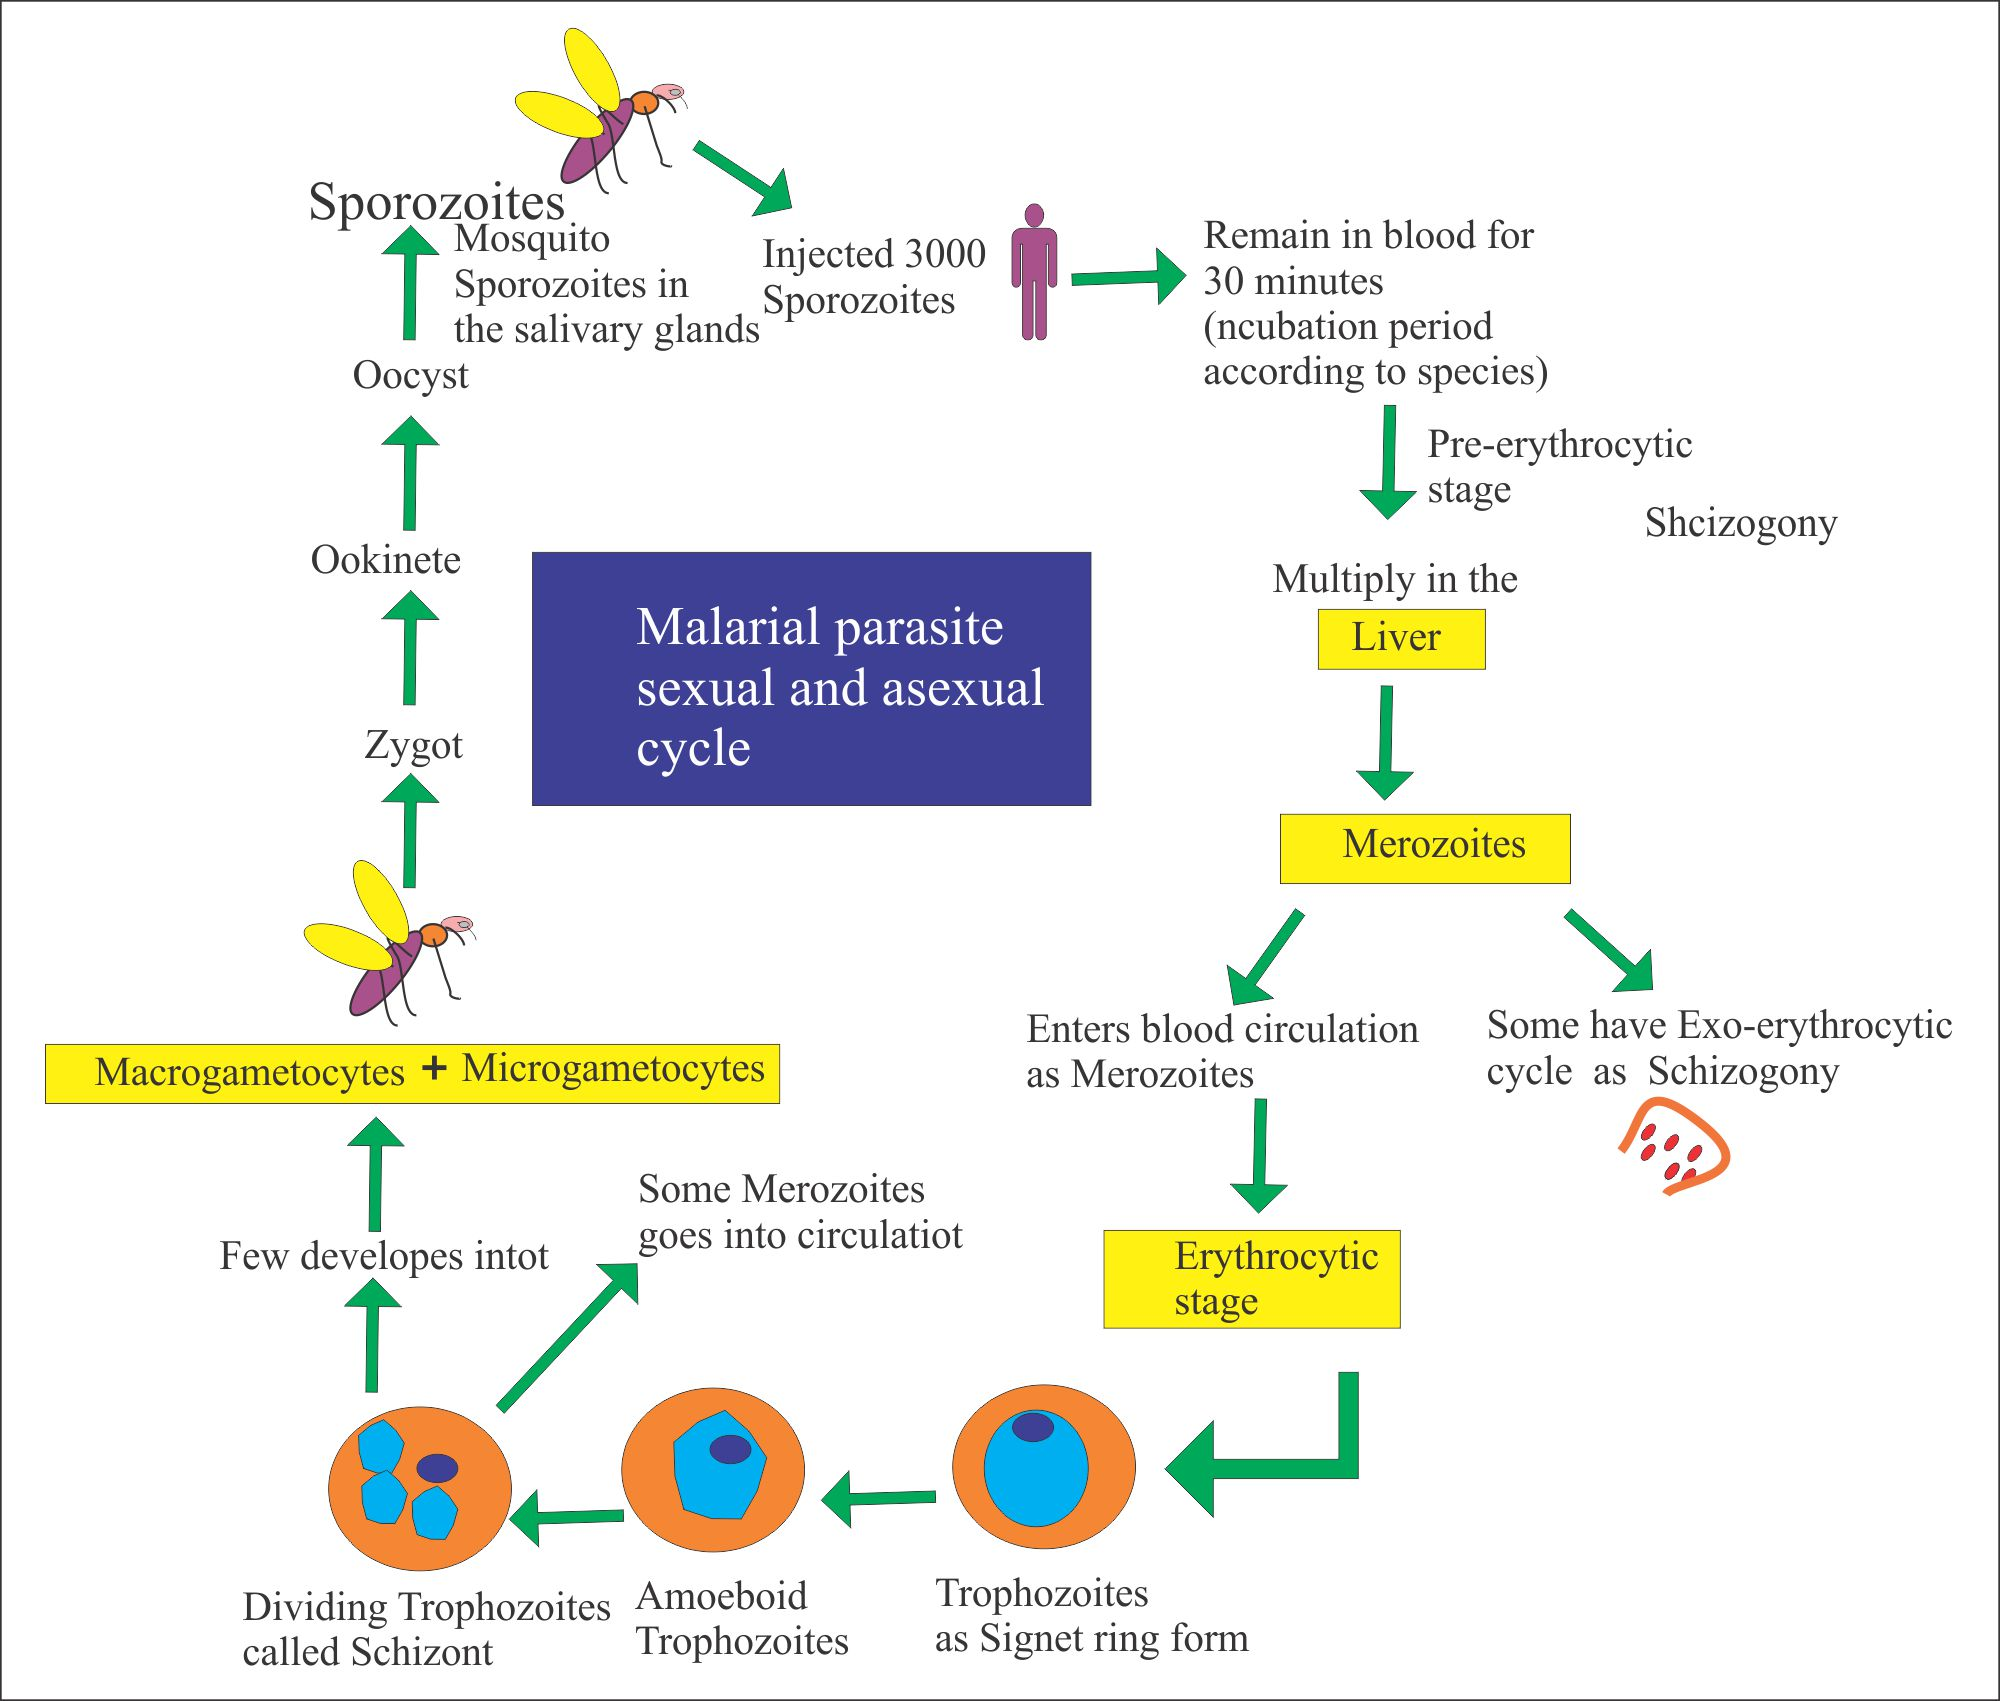 Malarial Parasite sexual and Asexual Cycle